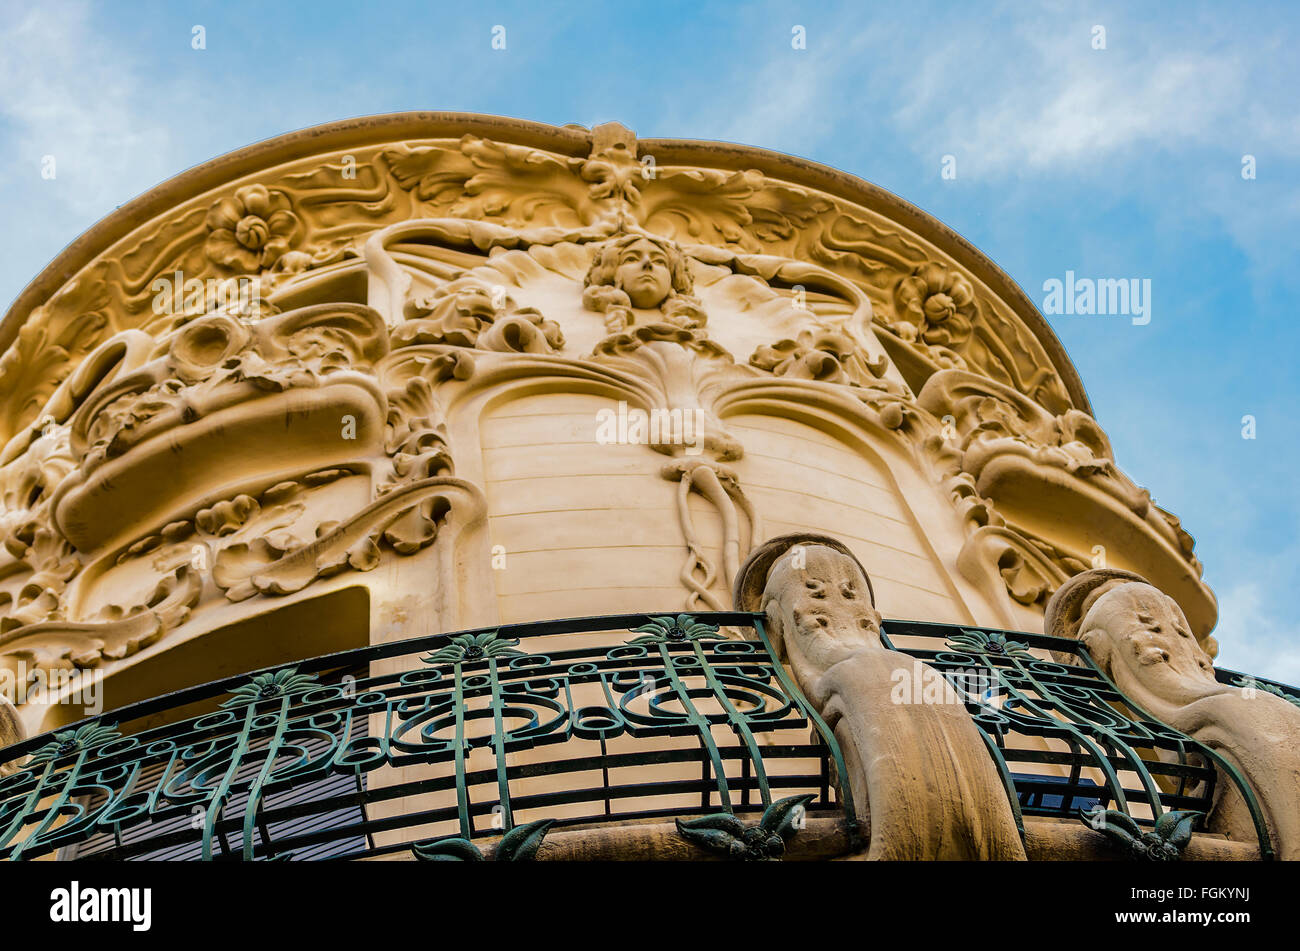 View of a front modernism style building in the center of Madrid city, Spain - Stock Image